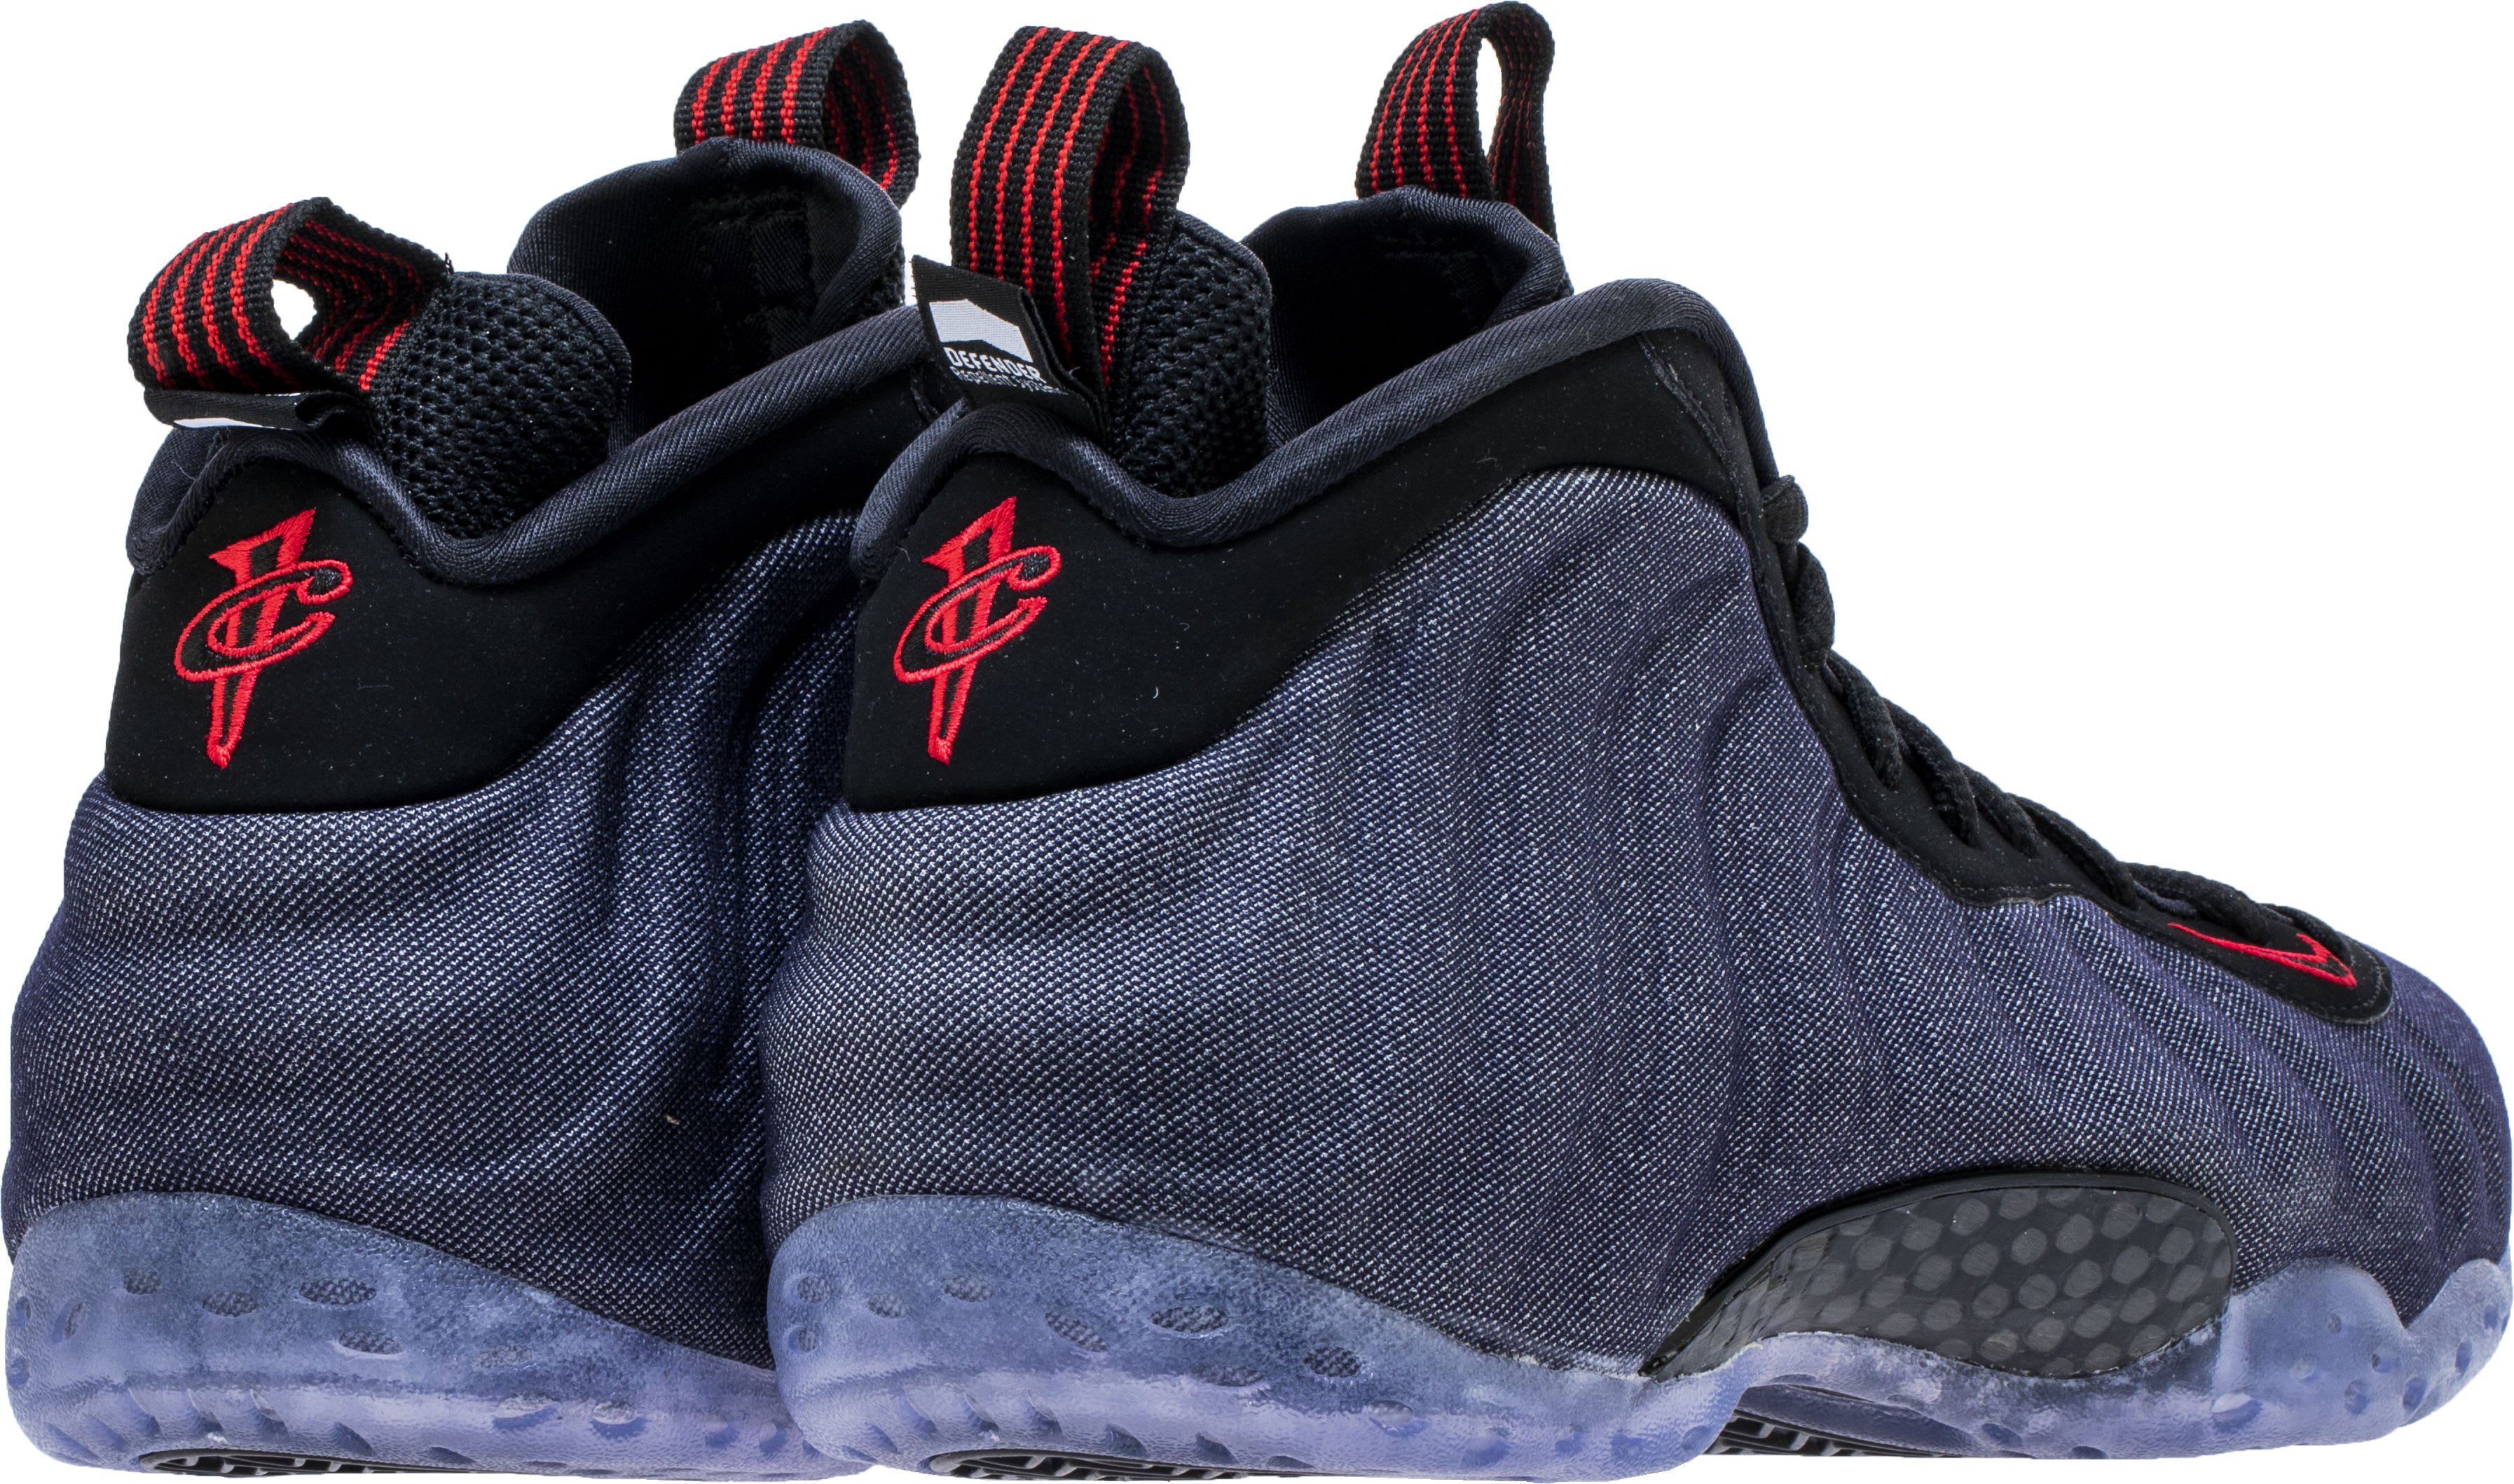 854404e72a1 Nike Air Foamposite One Denim Launch Date 314996-404 - The Today Press